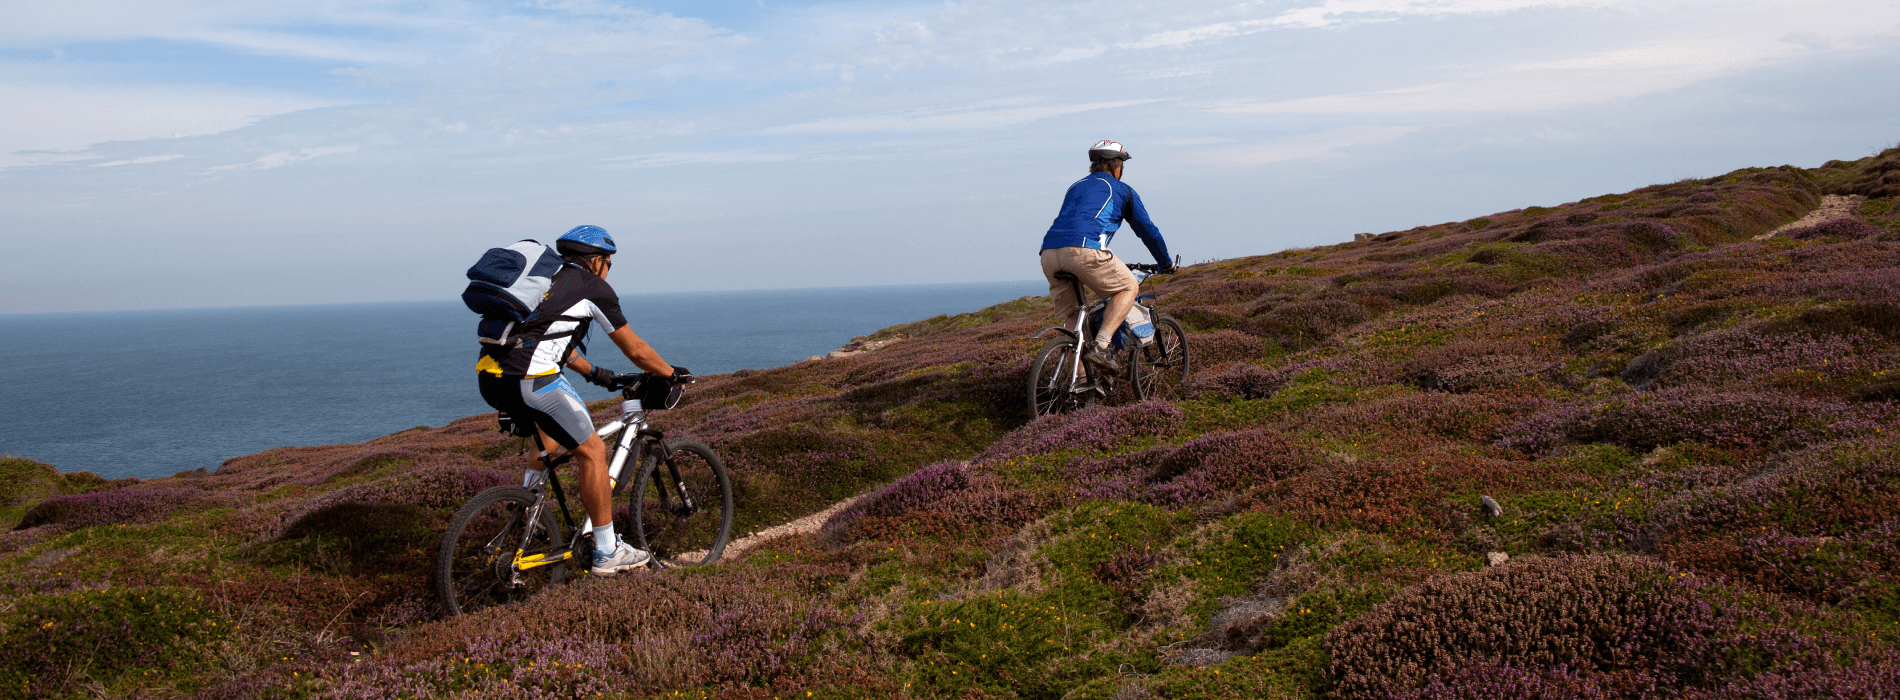 Inspired by the Tour De Yorkshire? Here are Four of the Best Cycling Routes in the UK